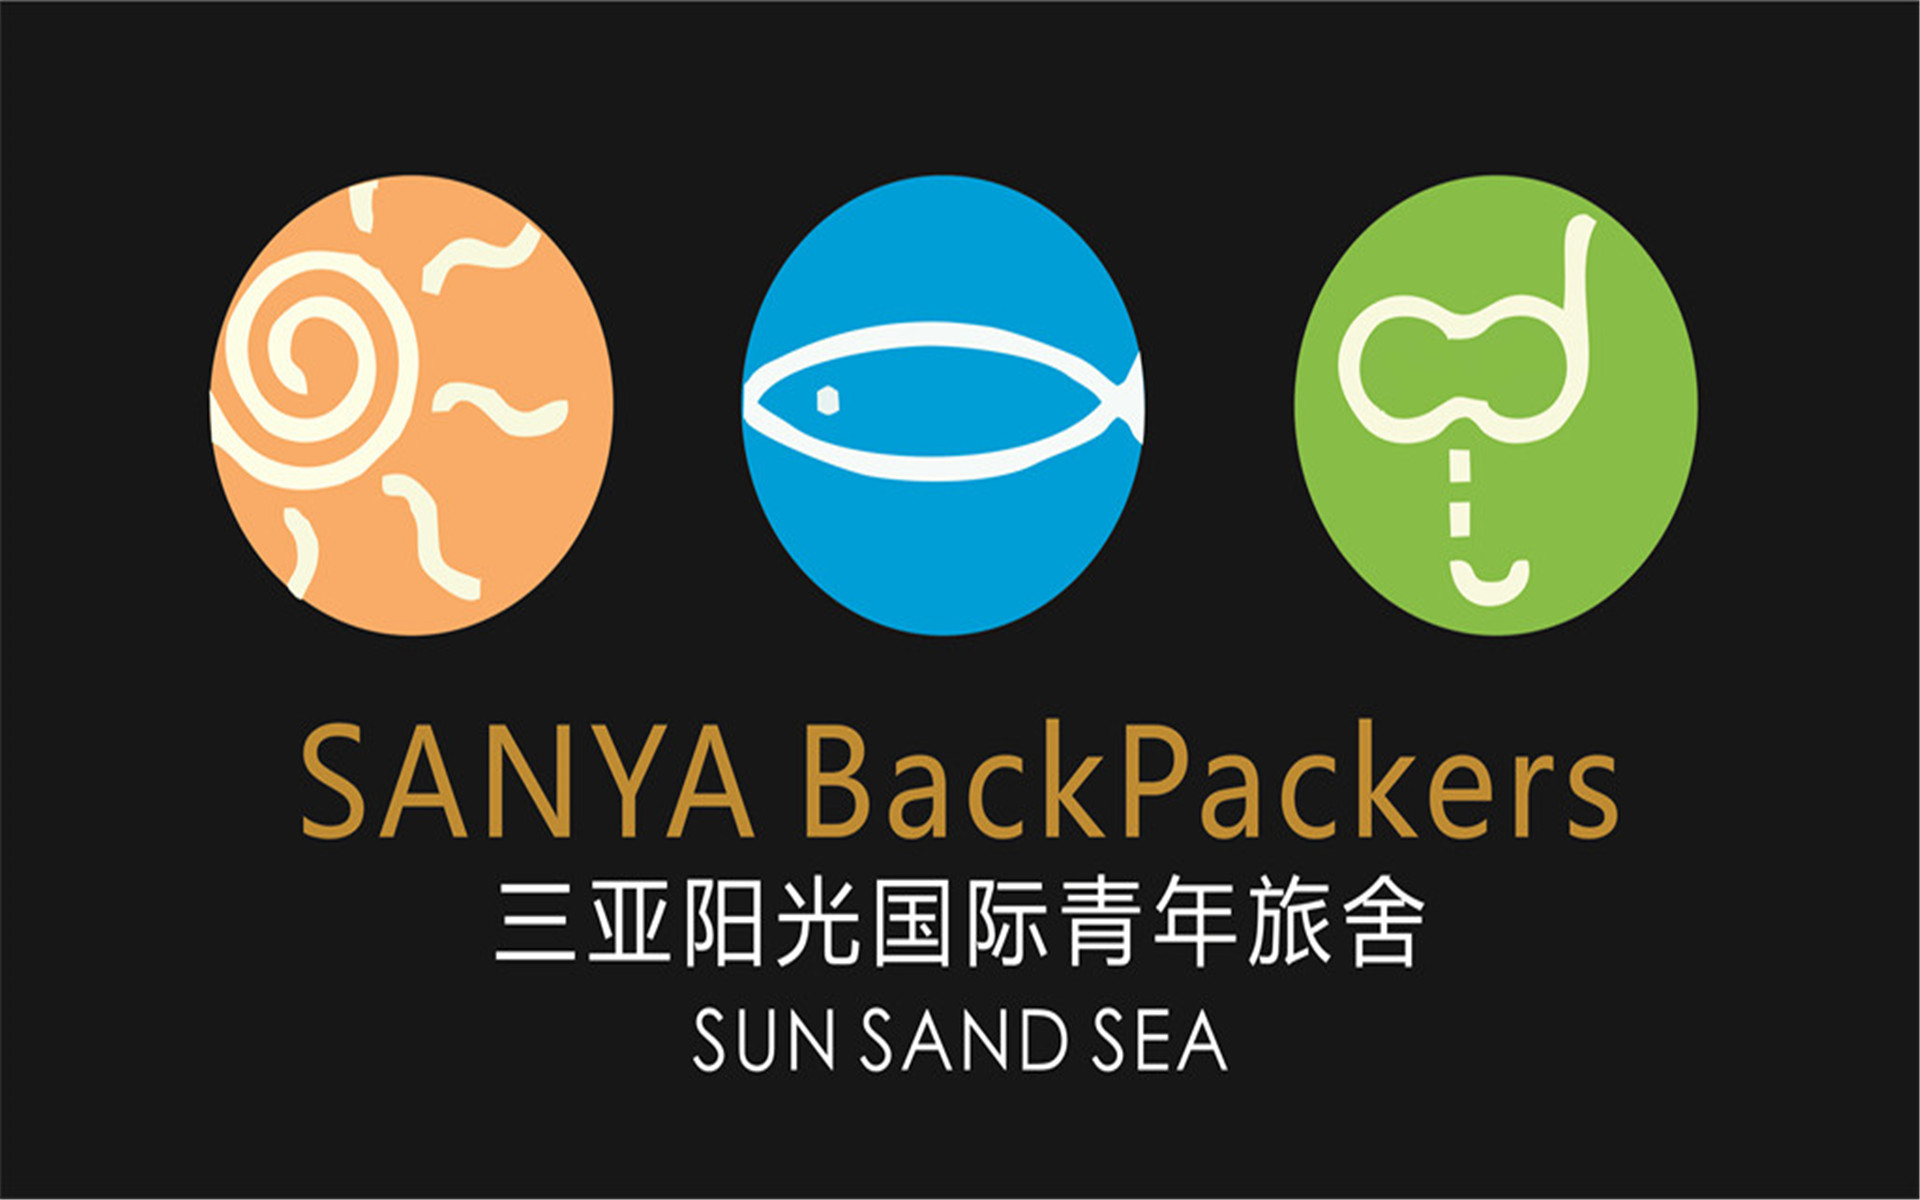 Sanya Backpackers